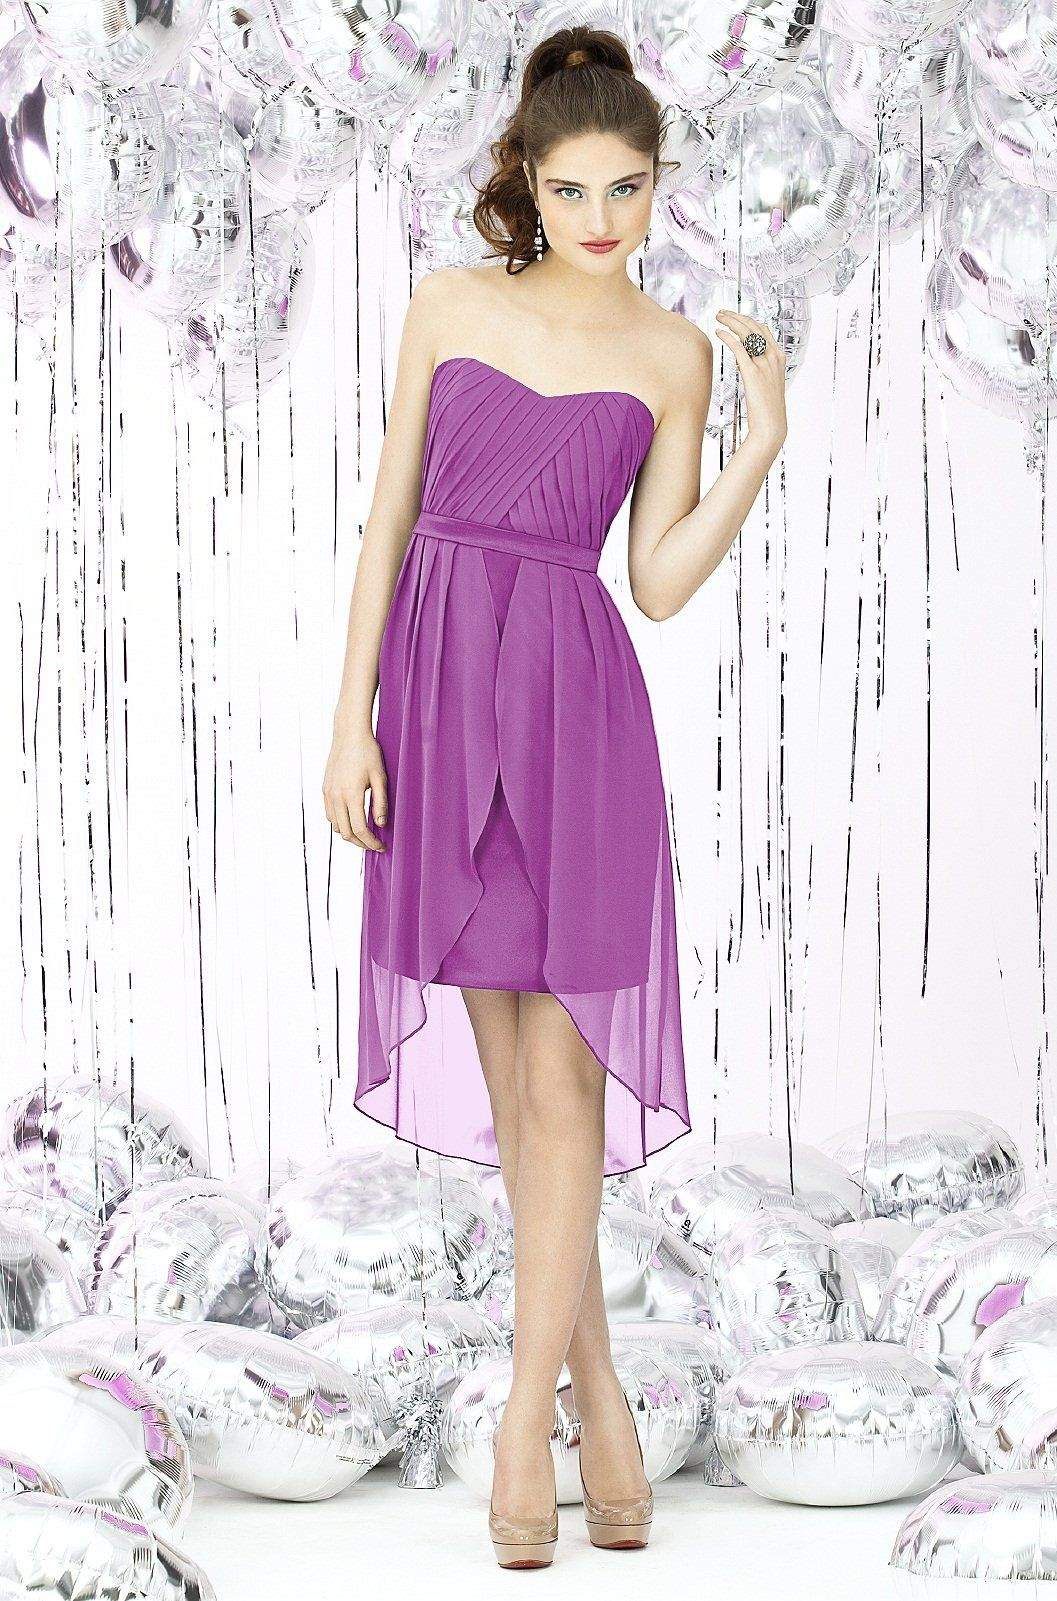 Fashion friday radiant orchid bridesmaid dresses with weddington shop social bridesmaid dress 8120 in lux chiffon at weddington way find the perfect made to order bridesmaid dresses for your bridal party in your ombrellifo Image collections